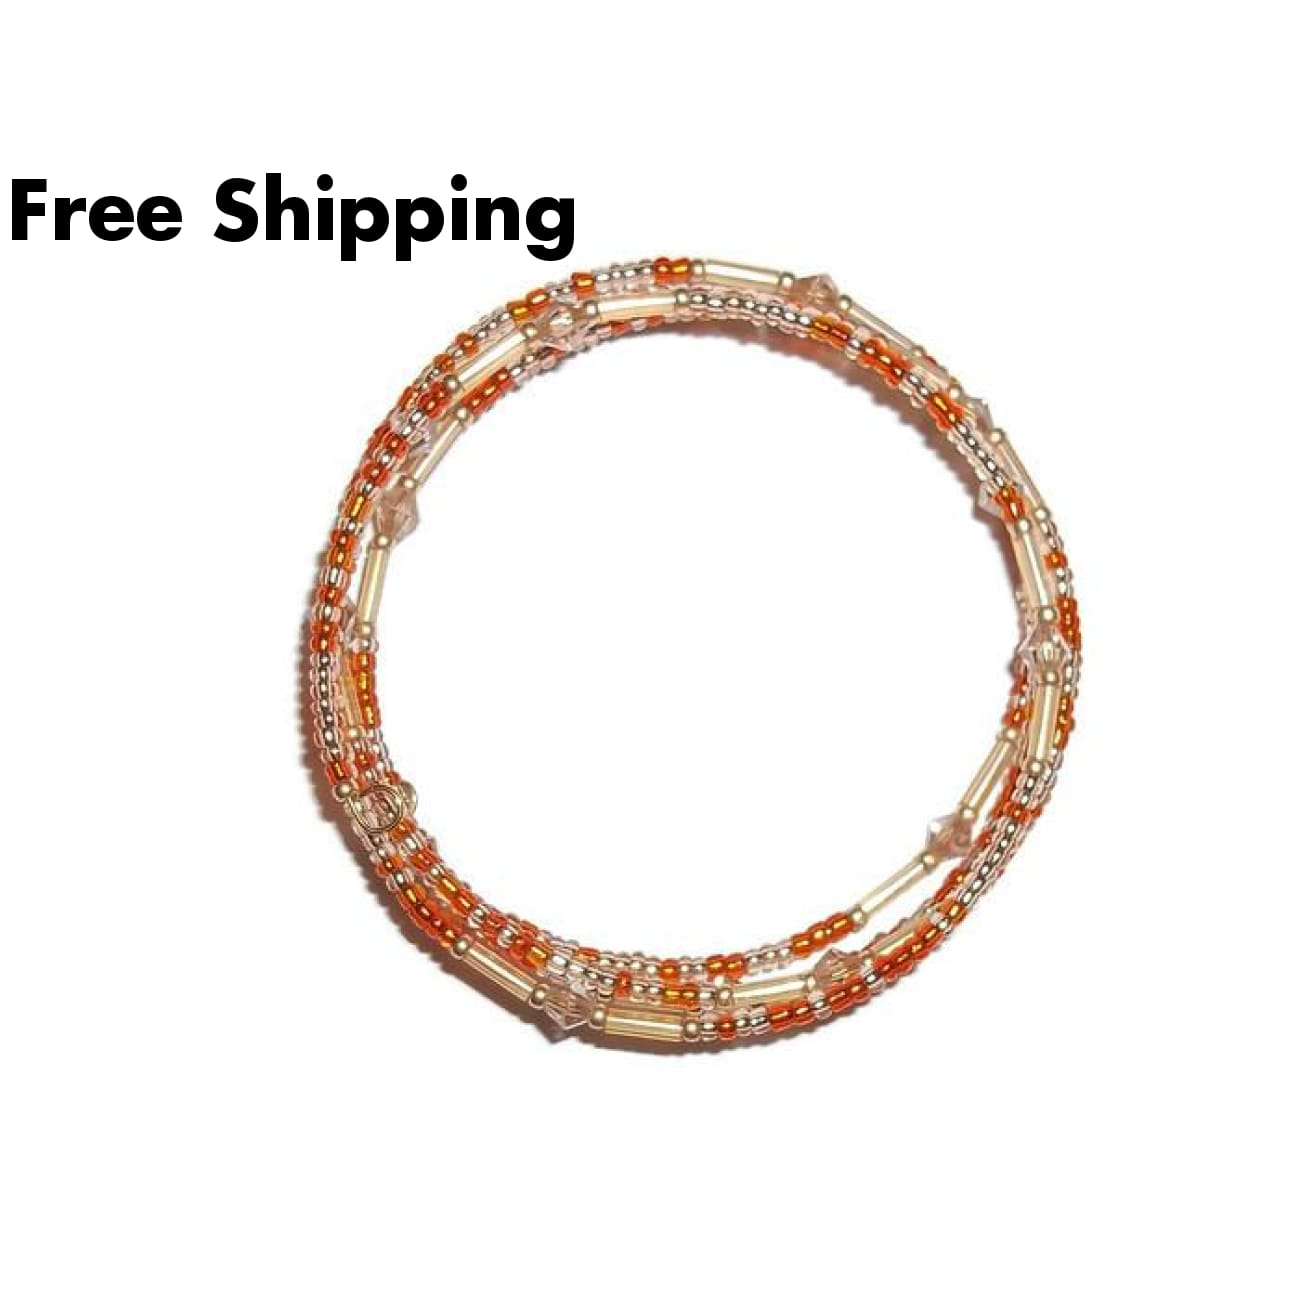 Deep Orange & Gold Glass & Champagne Crystal Artisan Crafted Wrap Bracelet - New Arrival